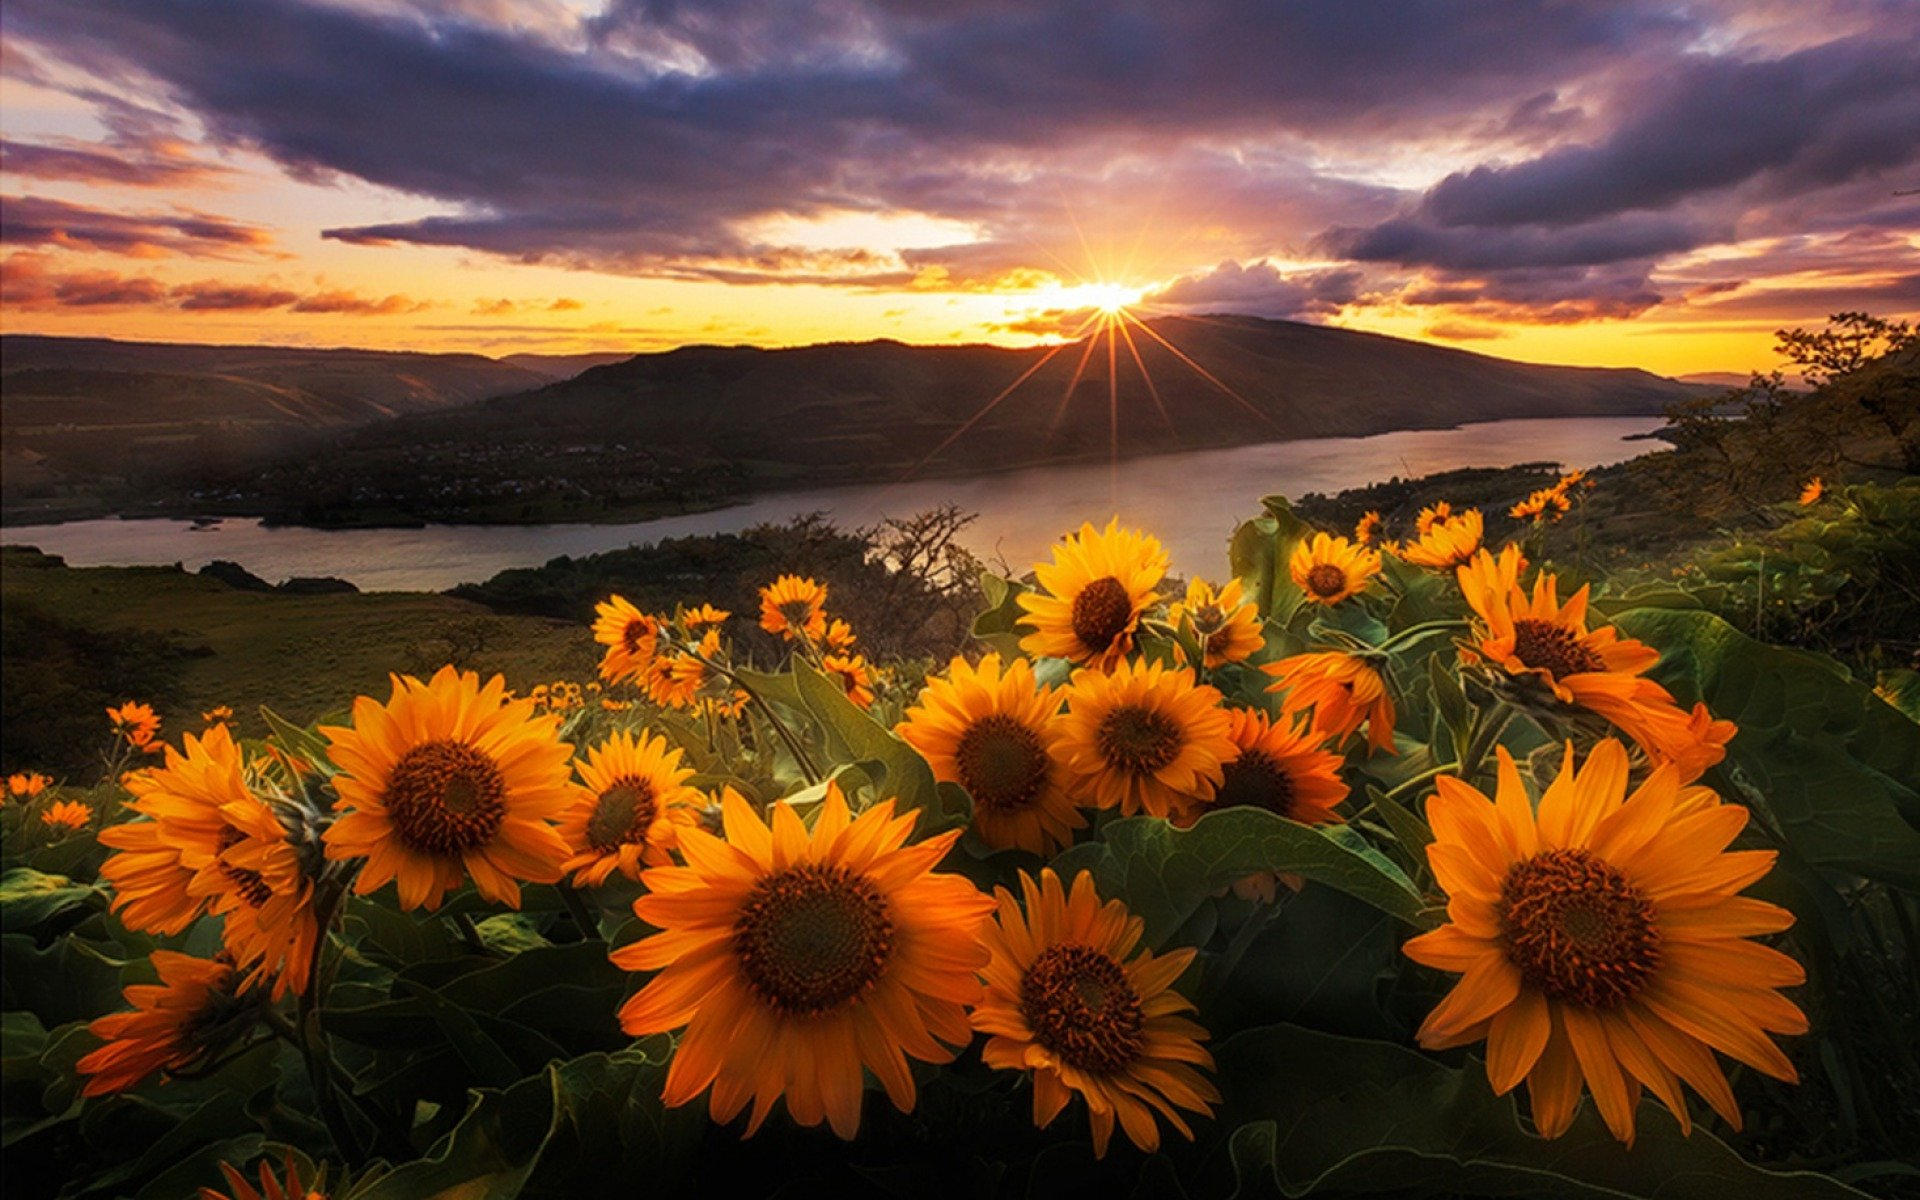 sunflower sunset images reverse search